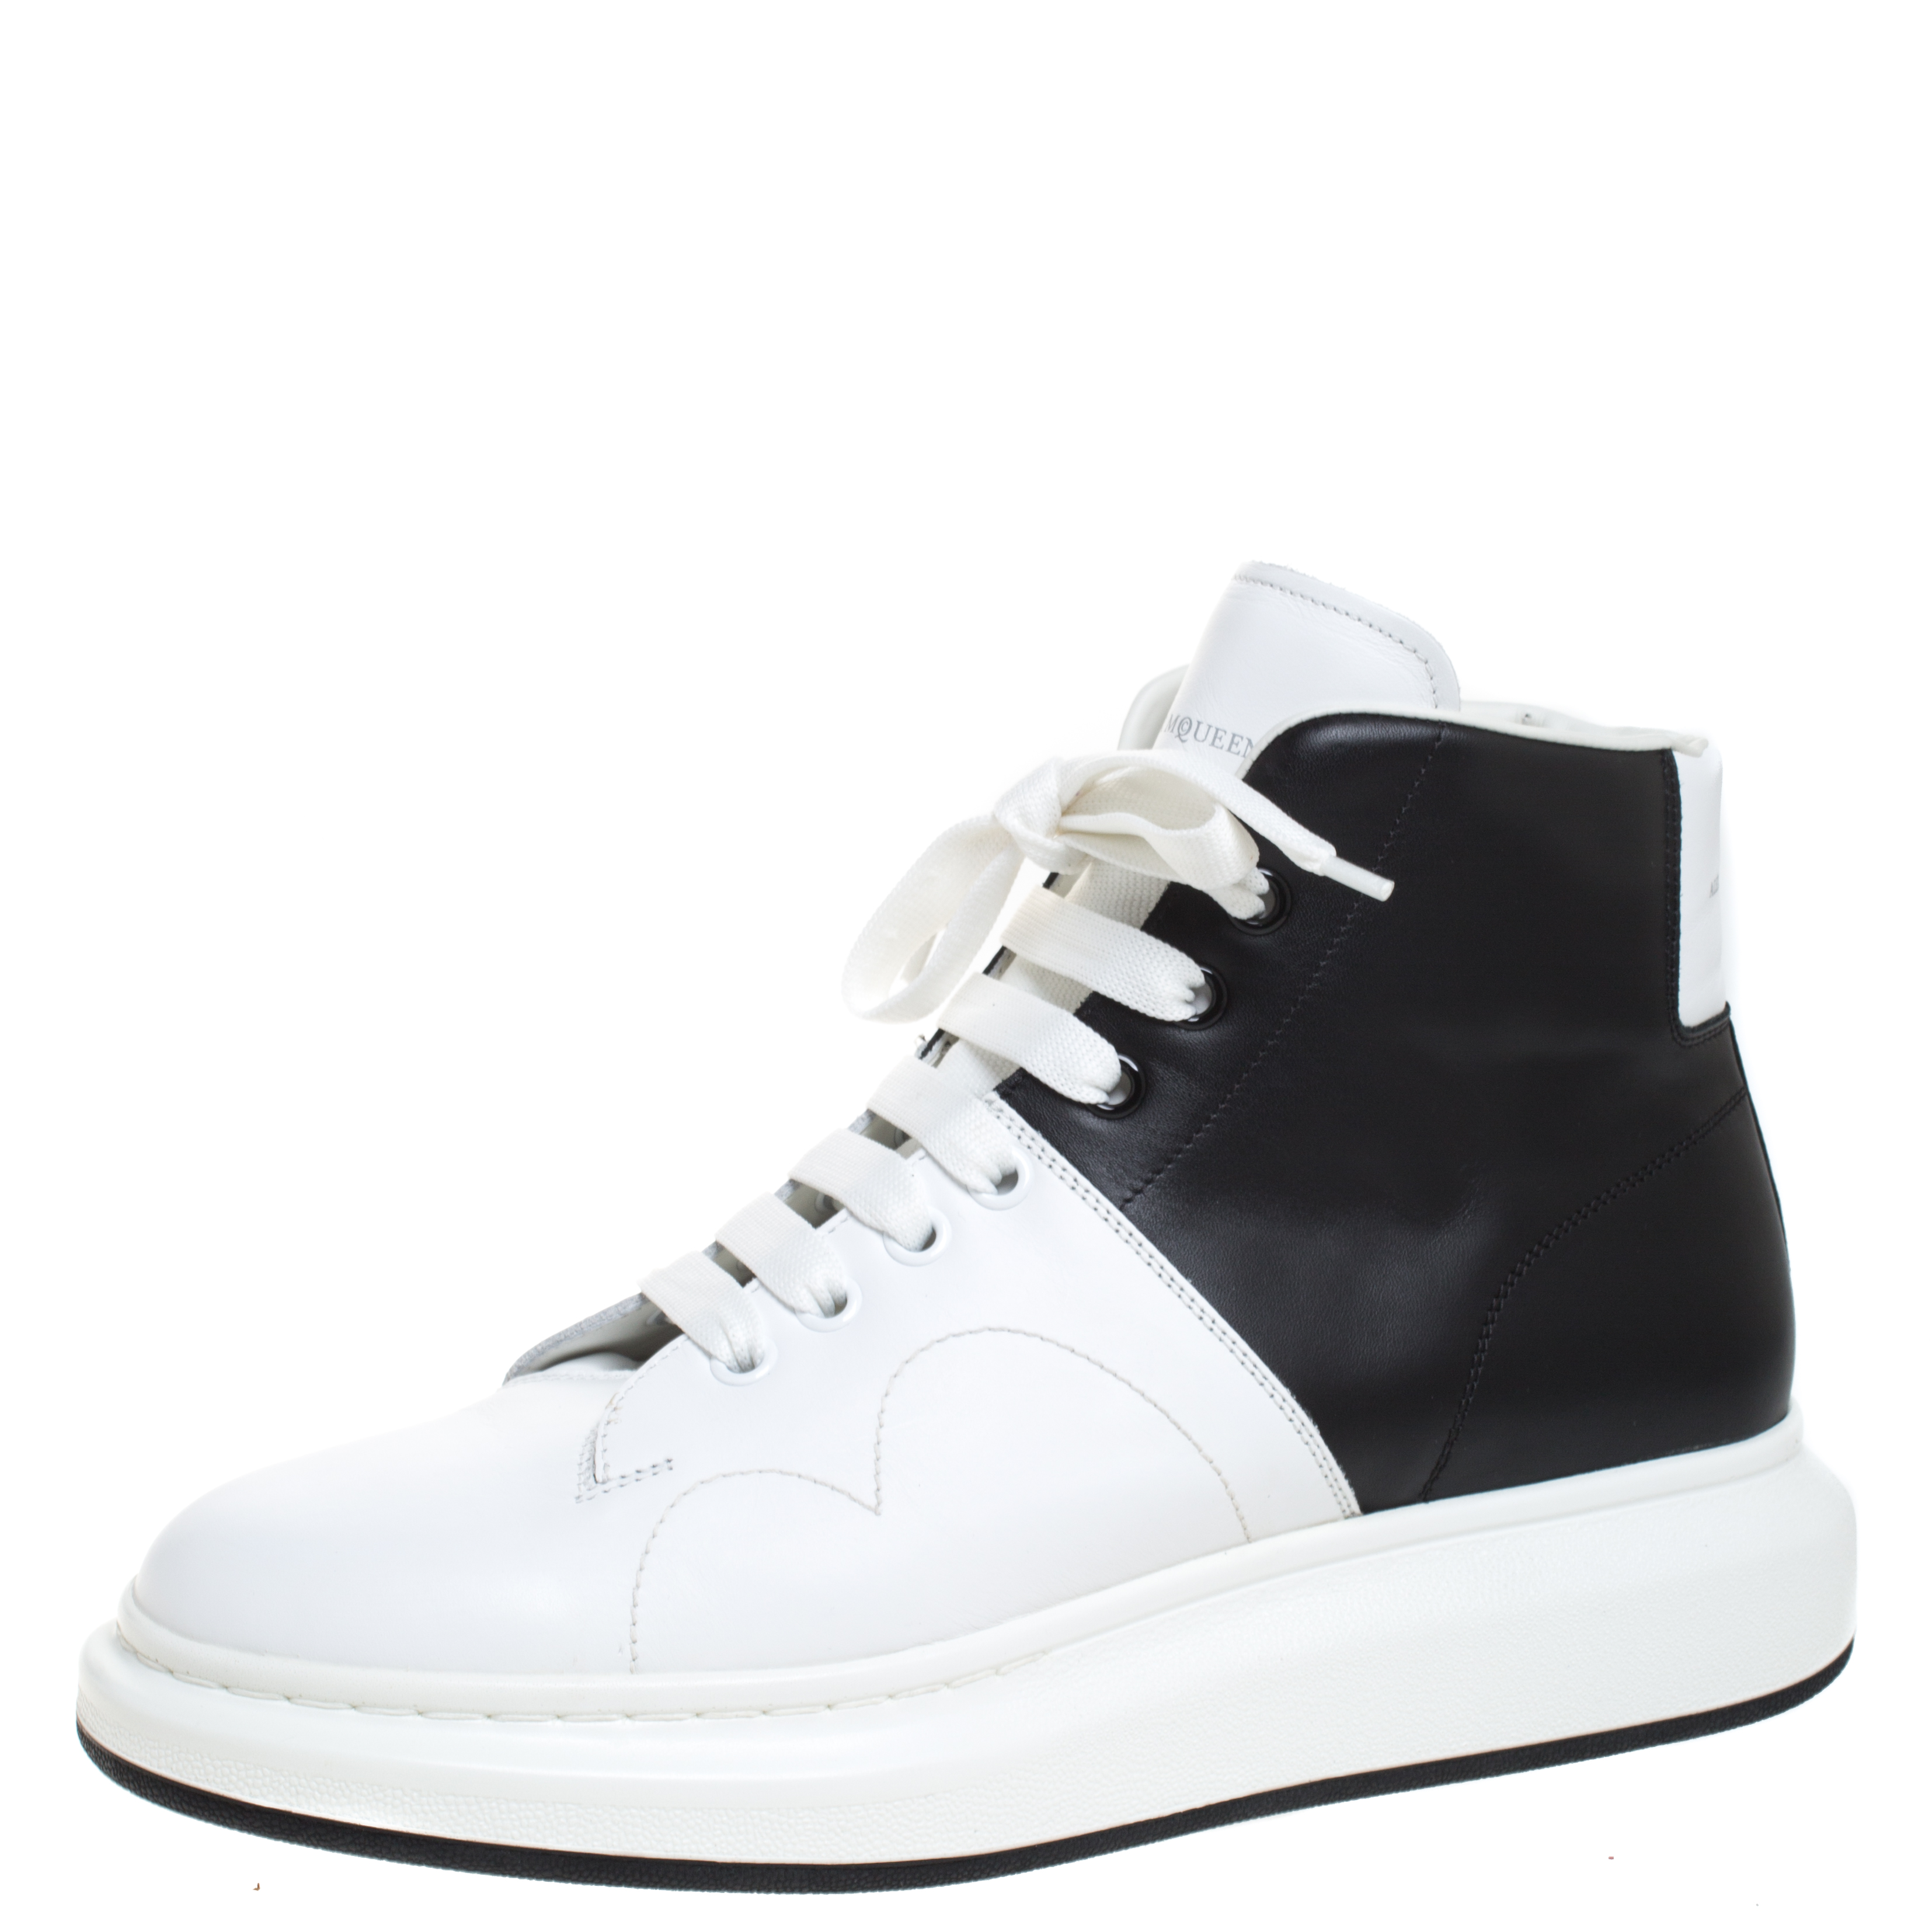 Alexander McQueen White/Black Leather Lace Up High Top Sneakers Size 45